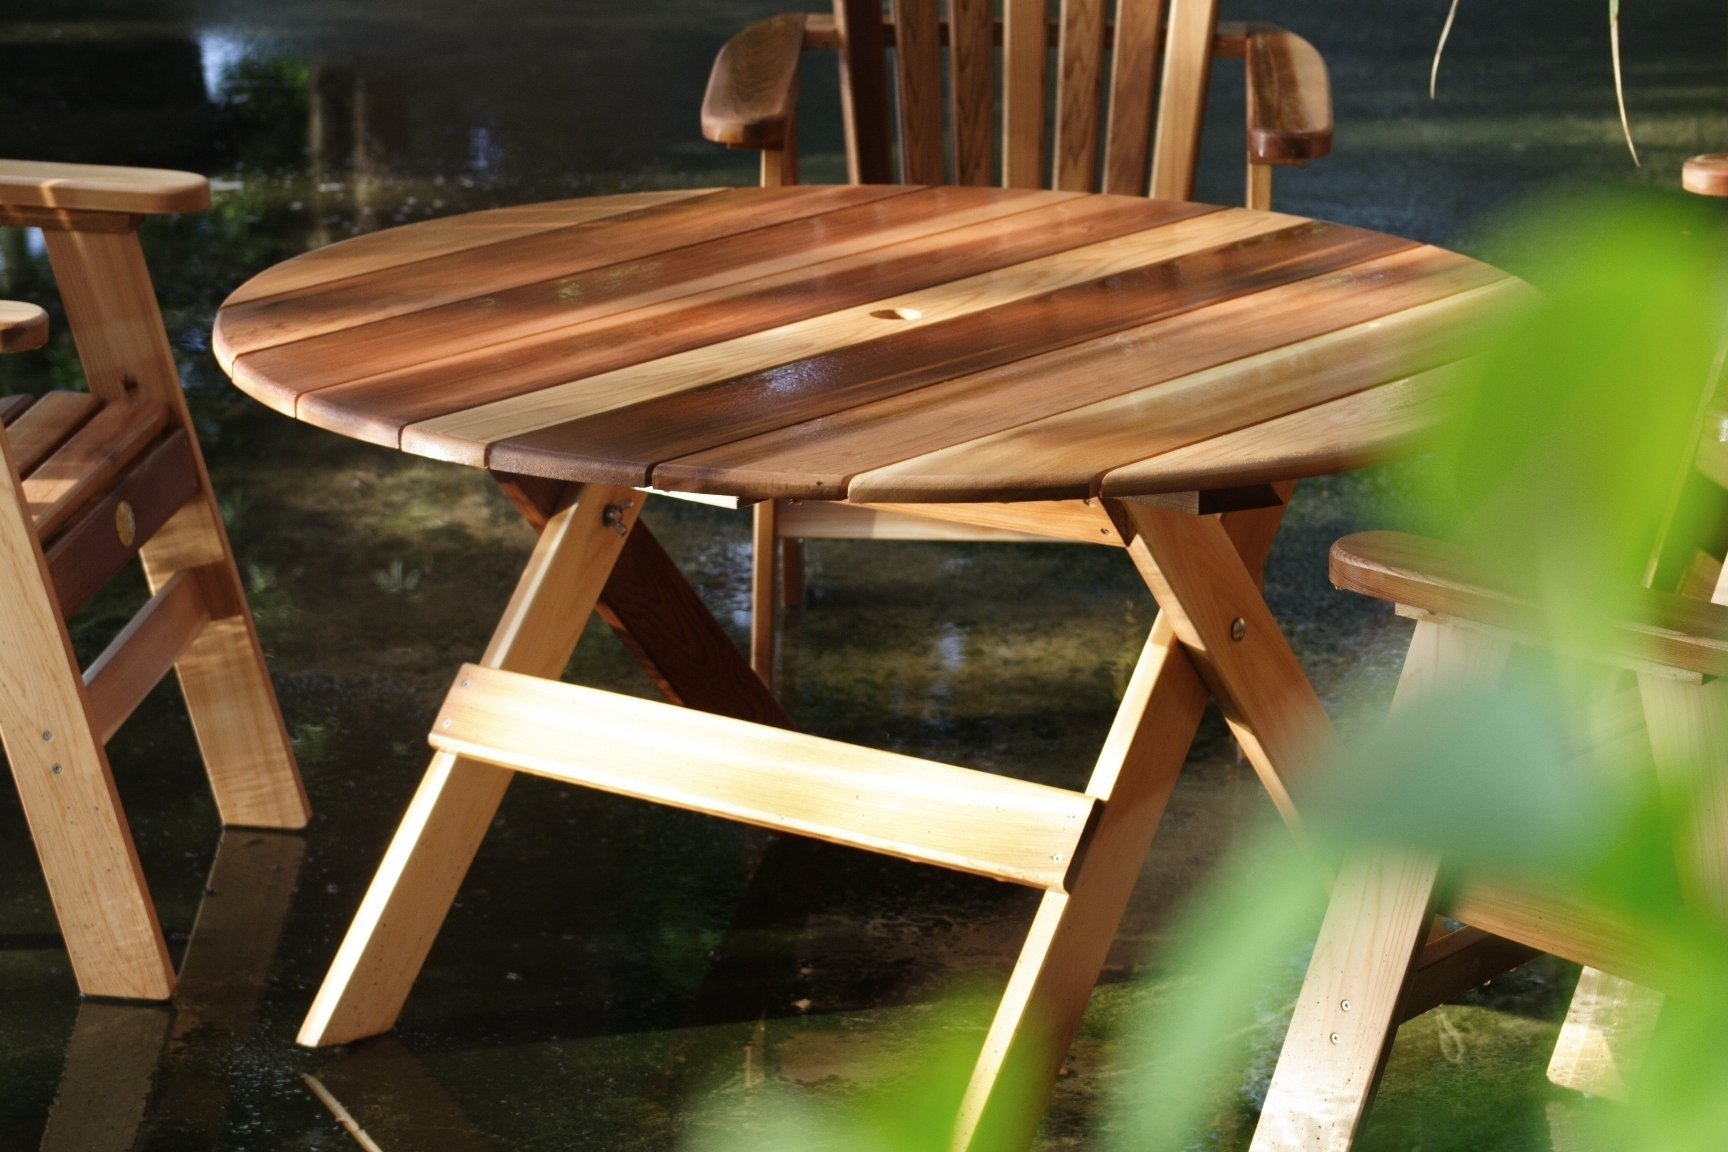 Charlton Home Macie Round Wooden Dining Table | Wayfair Intended For Most Up To Date Macie Round Dining Tables (View 8 of 20)